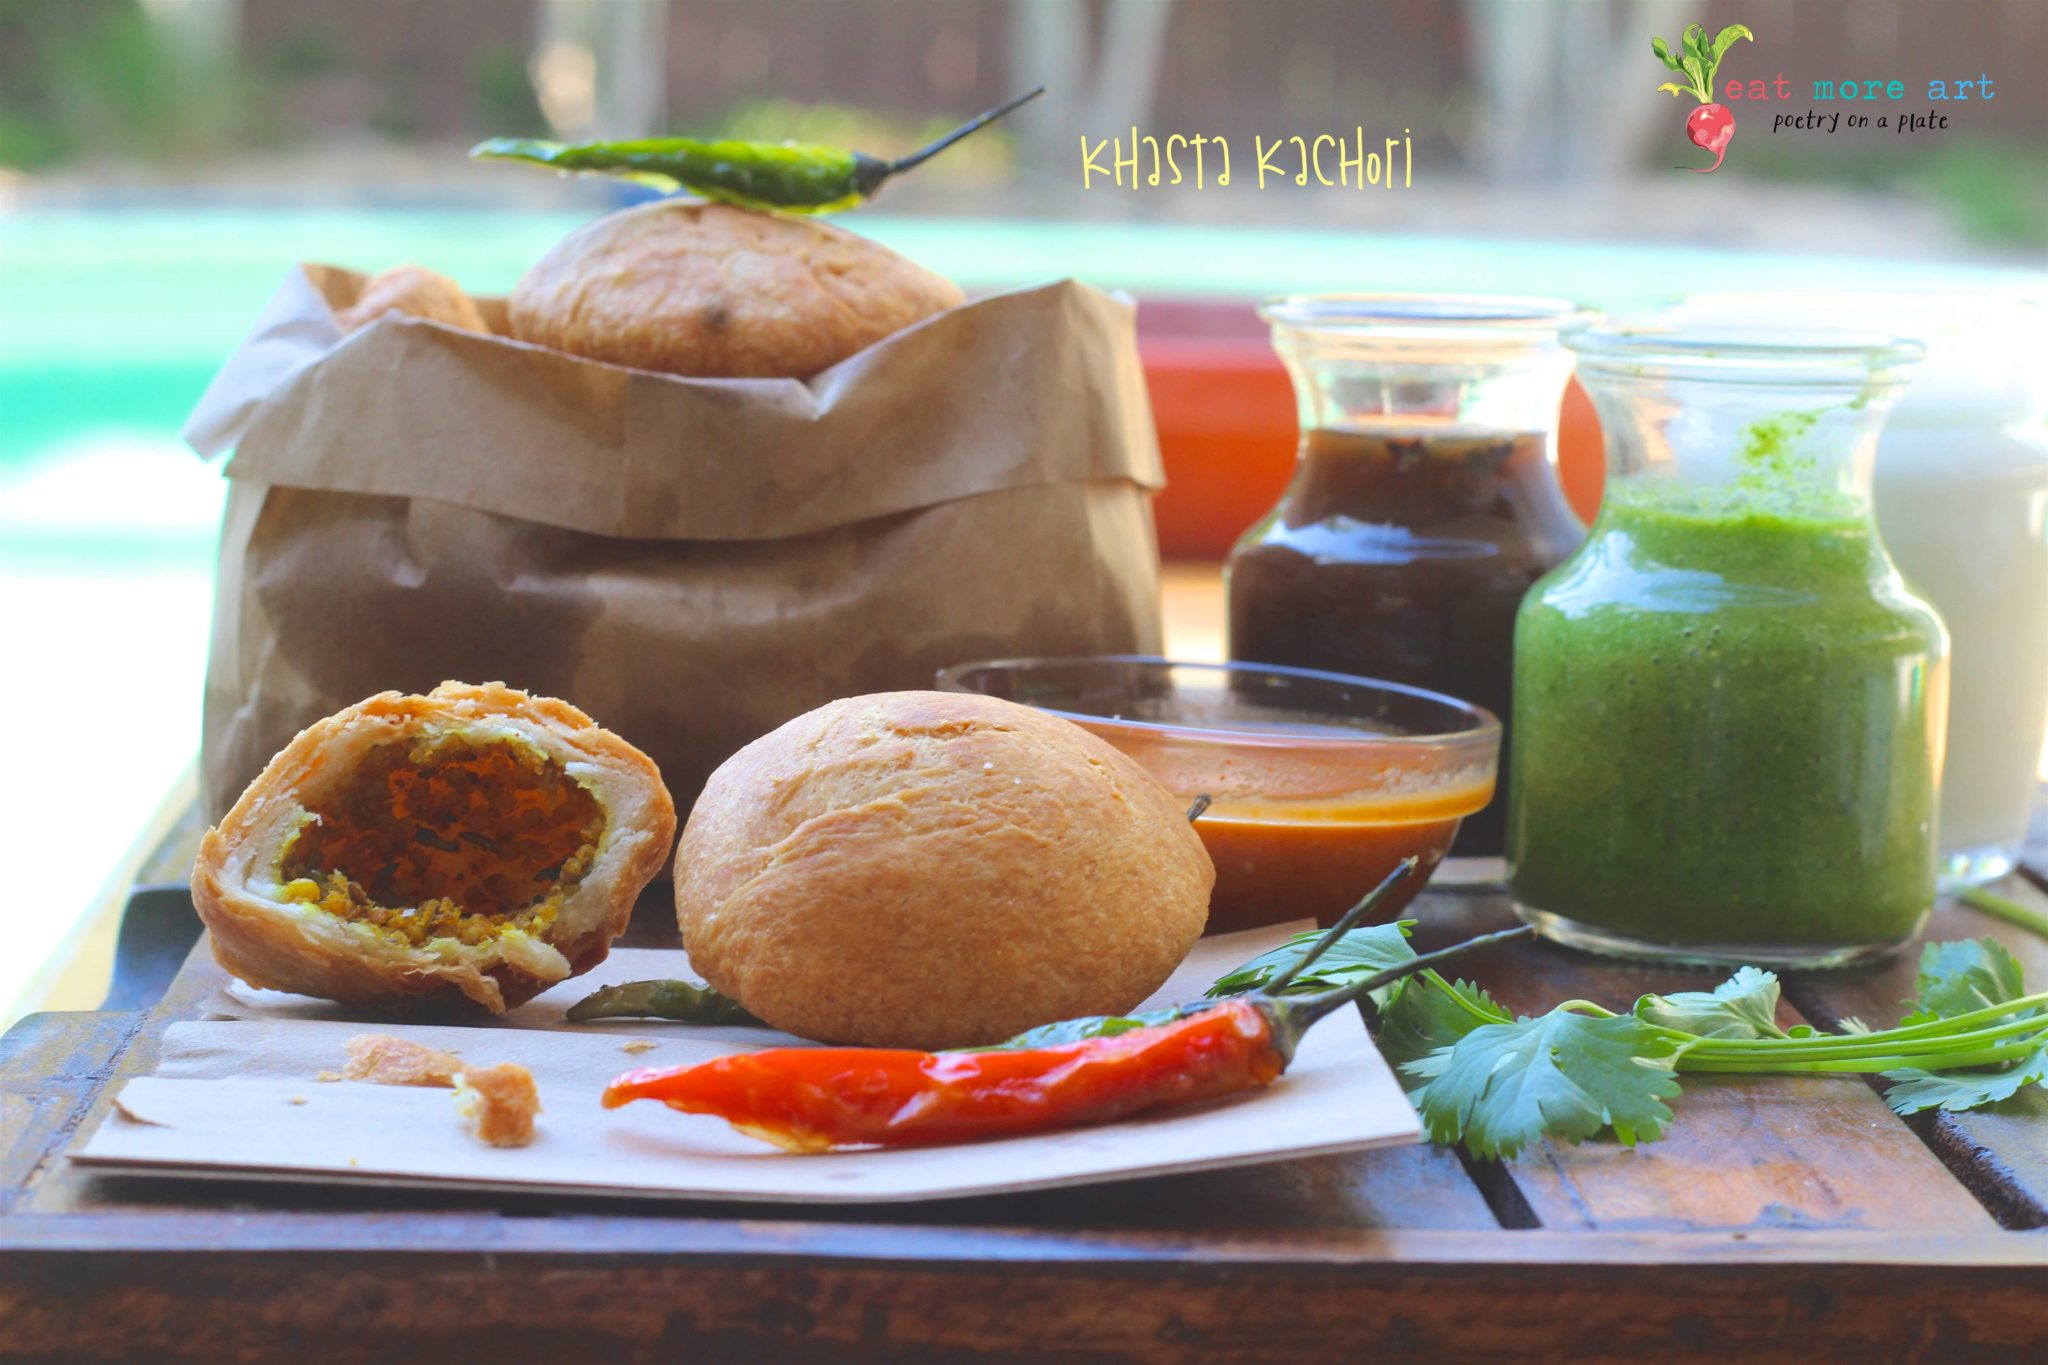 Khasta Kachori close up with a red, green chili and chutneys